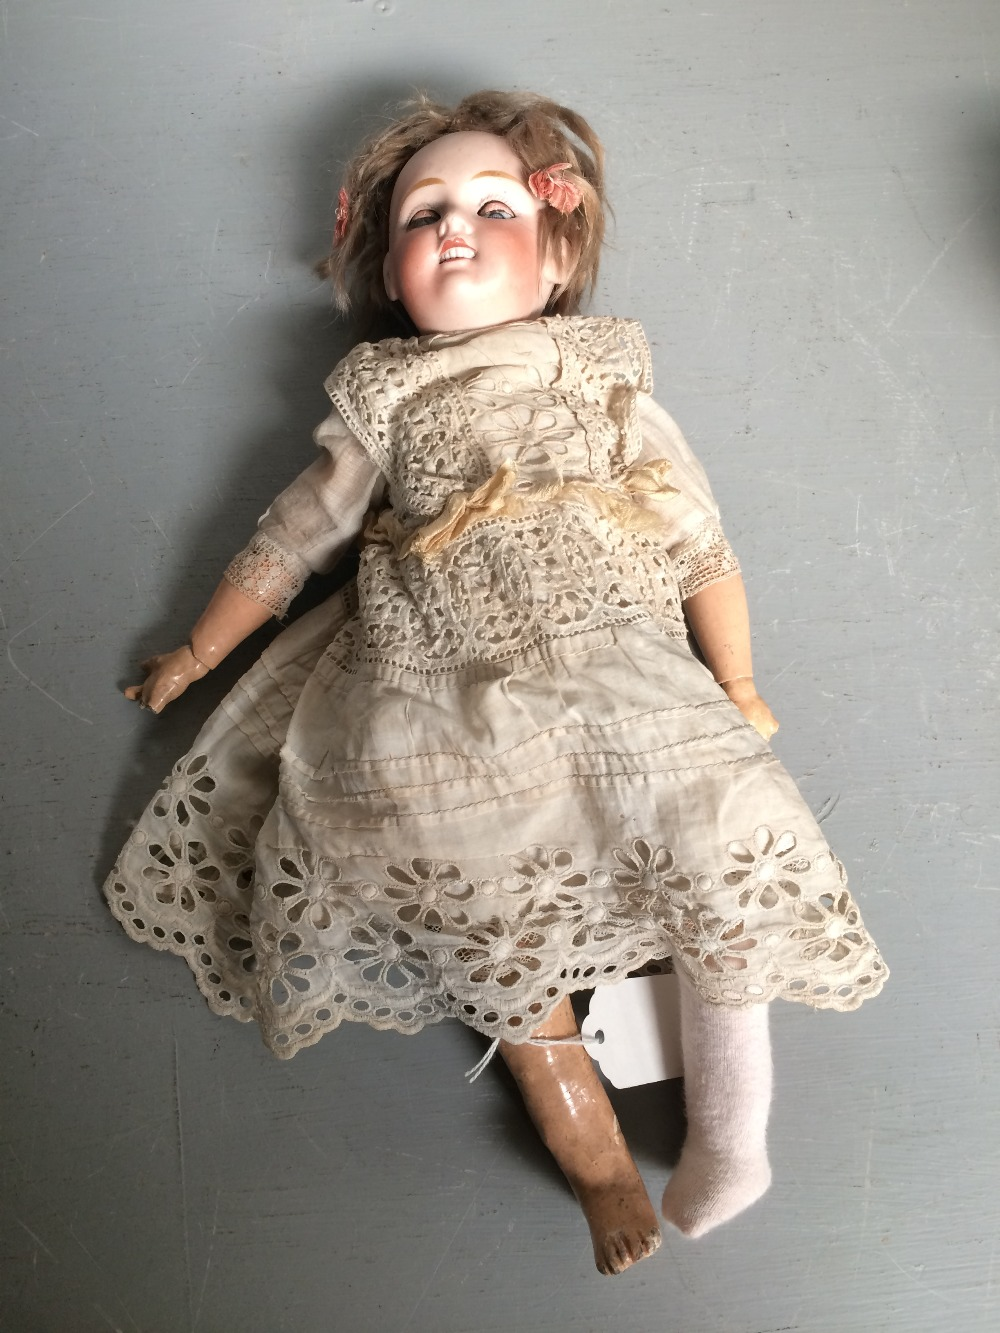 Lot 132 - Doll by Jules Verlingne with closing eyes & original clothing. Mark Petiet Francaise J Anchor V